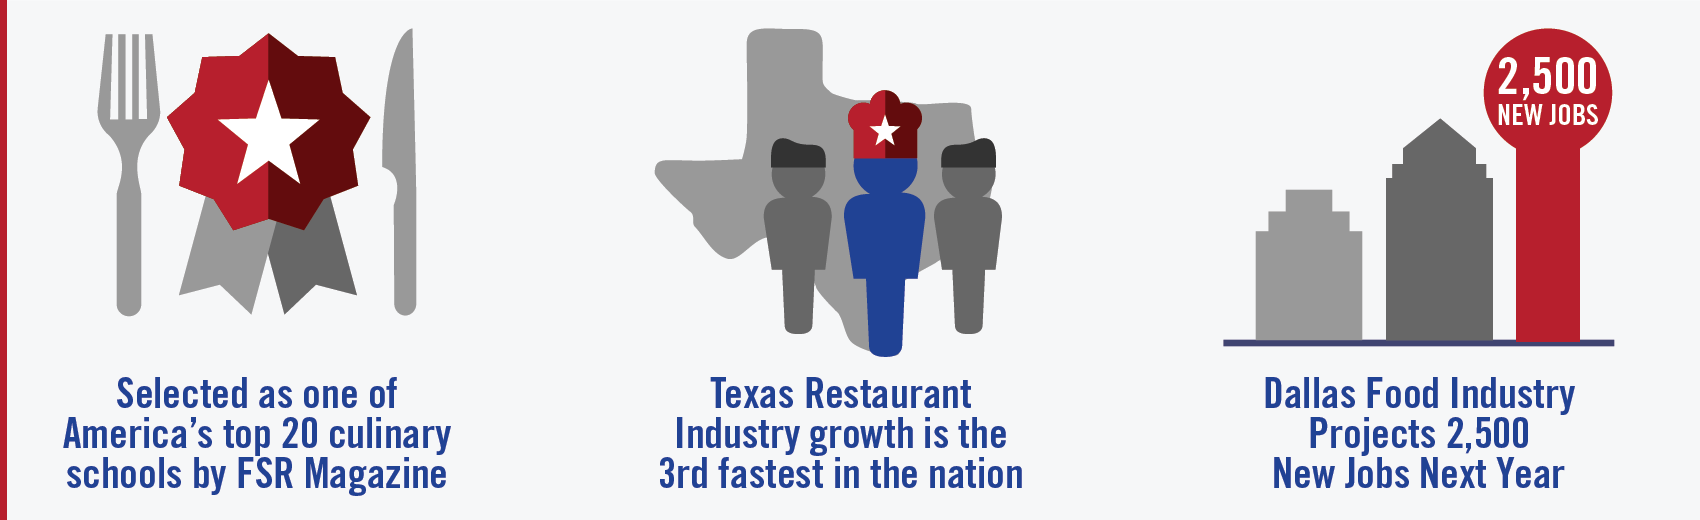 Food and hospitality service industry stats